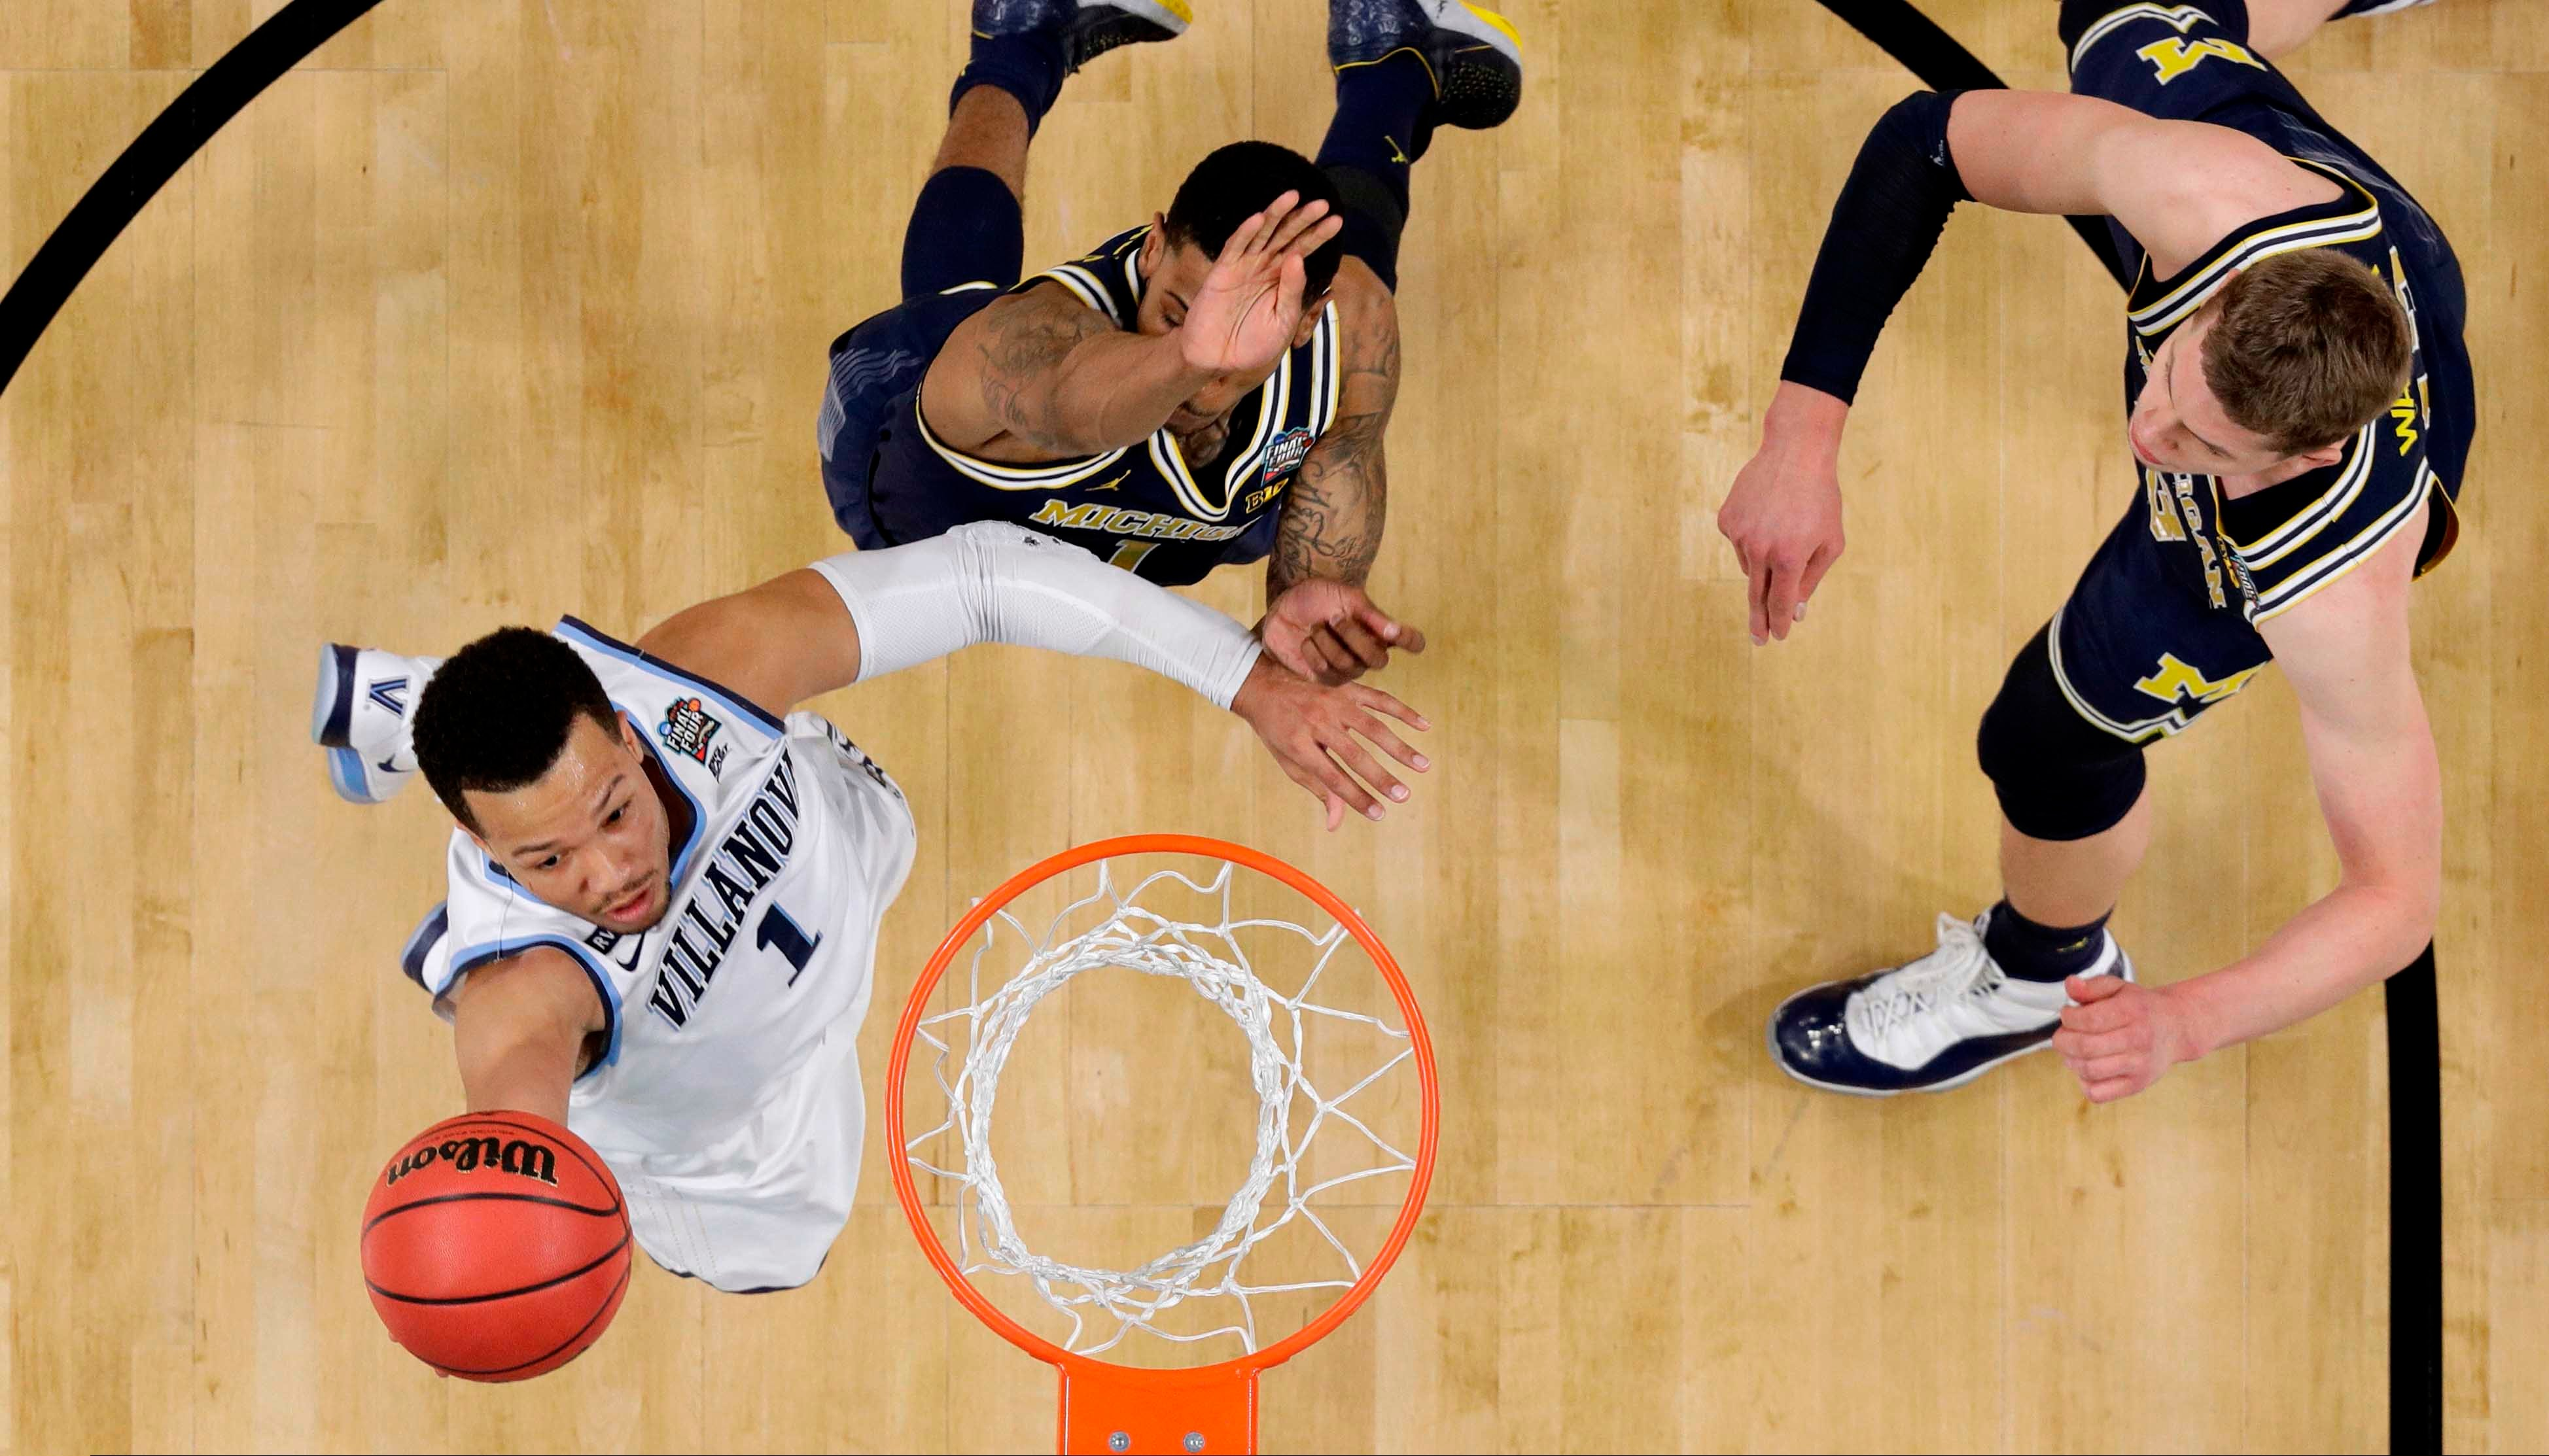 Villanova guard Jalen Brunson, left, drives to the basket over Michigan defenders Charles Matthews, center, and Moritz Wagner, right, during the championship game of the Final Four NCAA college basketball tournament, on April 2, 2018. (AP Photo/Eric Gay)